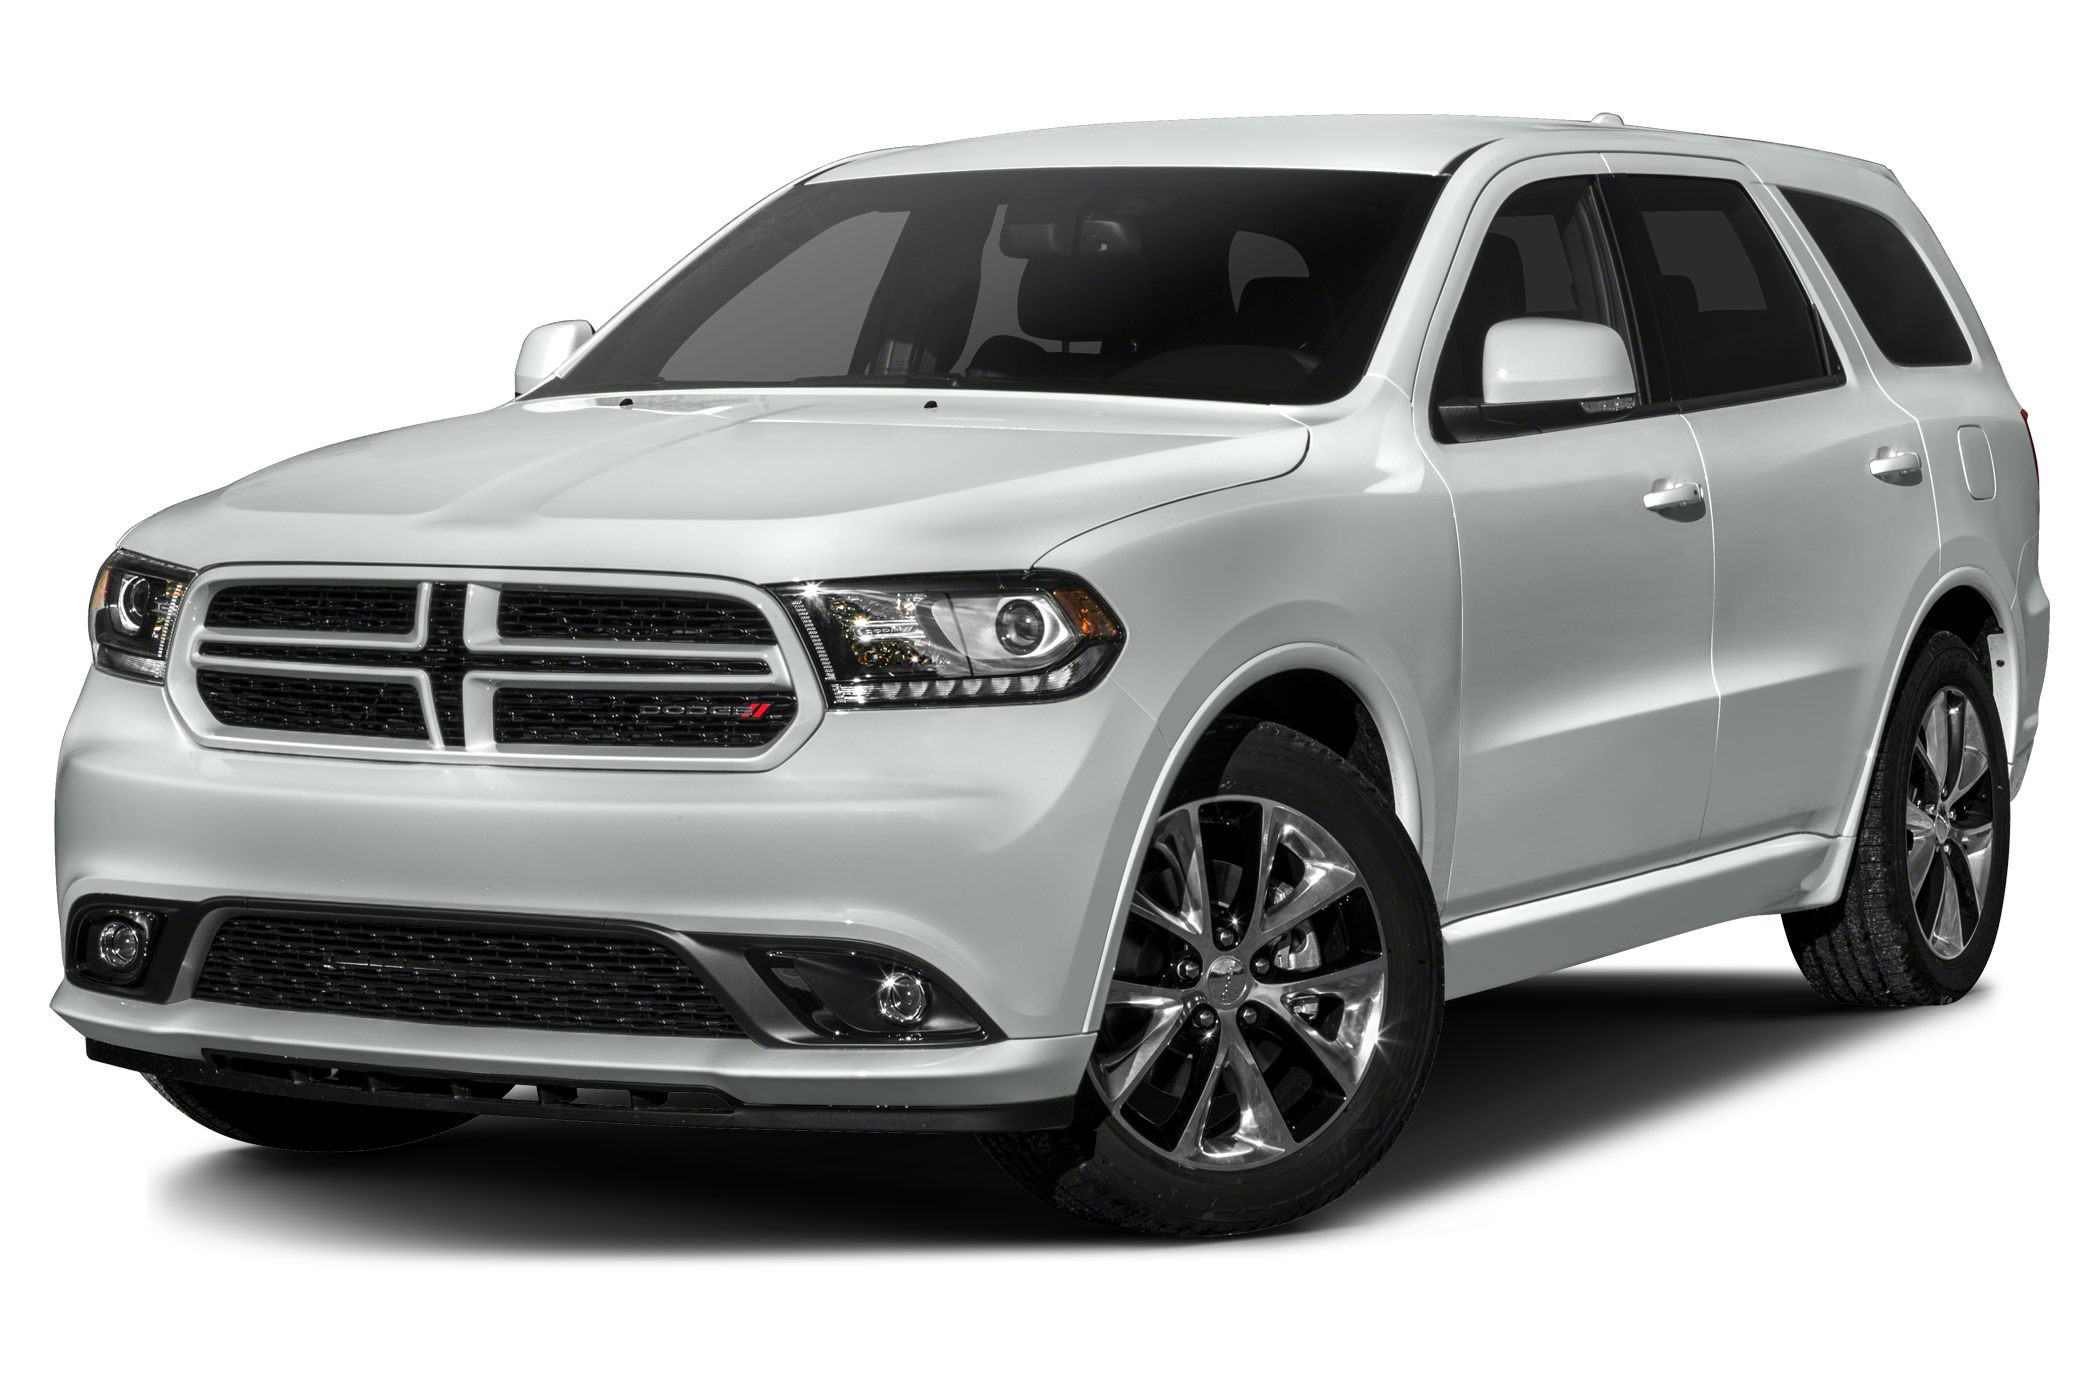 2015 Dodge Durango R/T SUV for sale in Vienna for $48,870 with 0 miles.